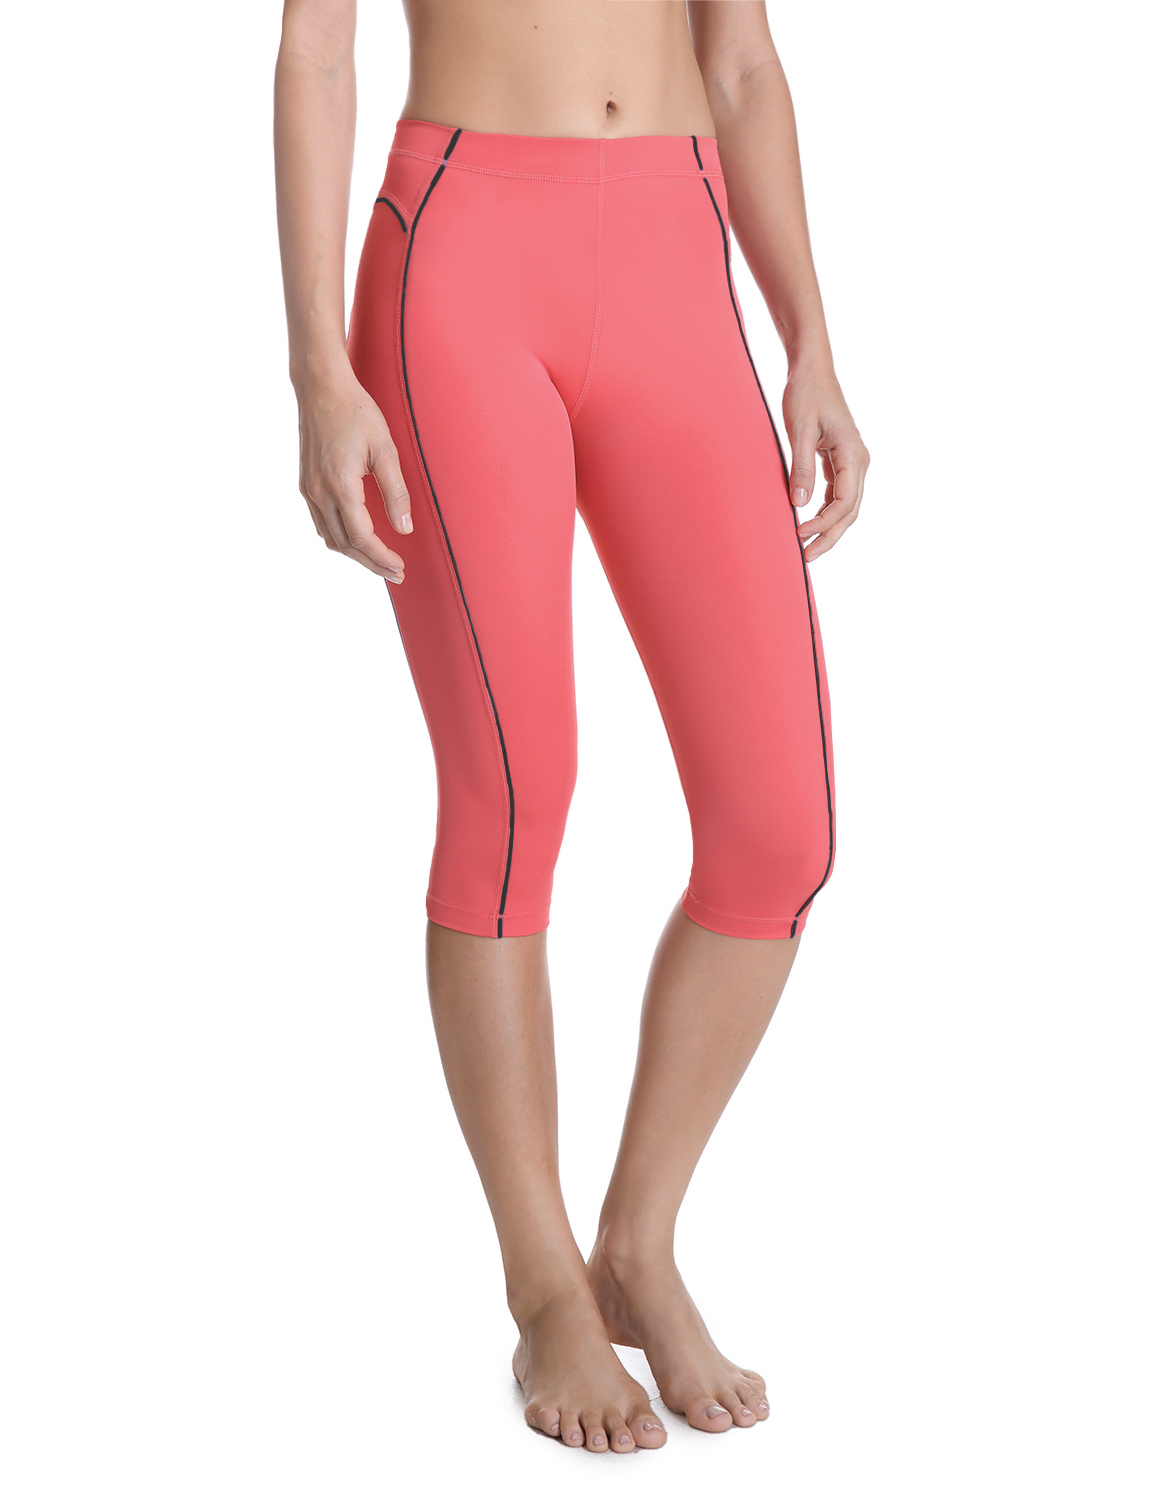 Elegant CHAMPION Women39s Double Dry Fitness Absolute Workout Knee Pants